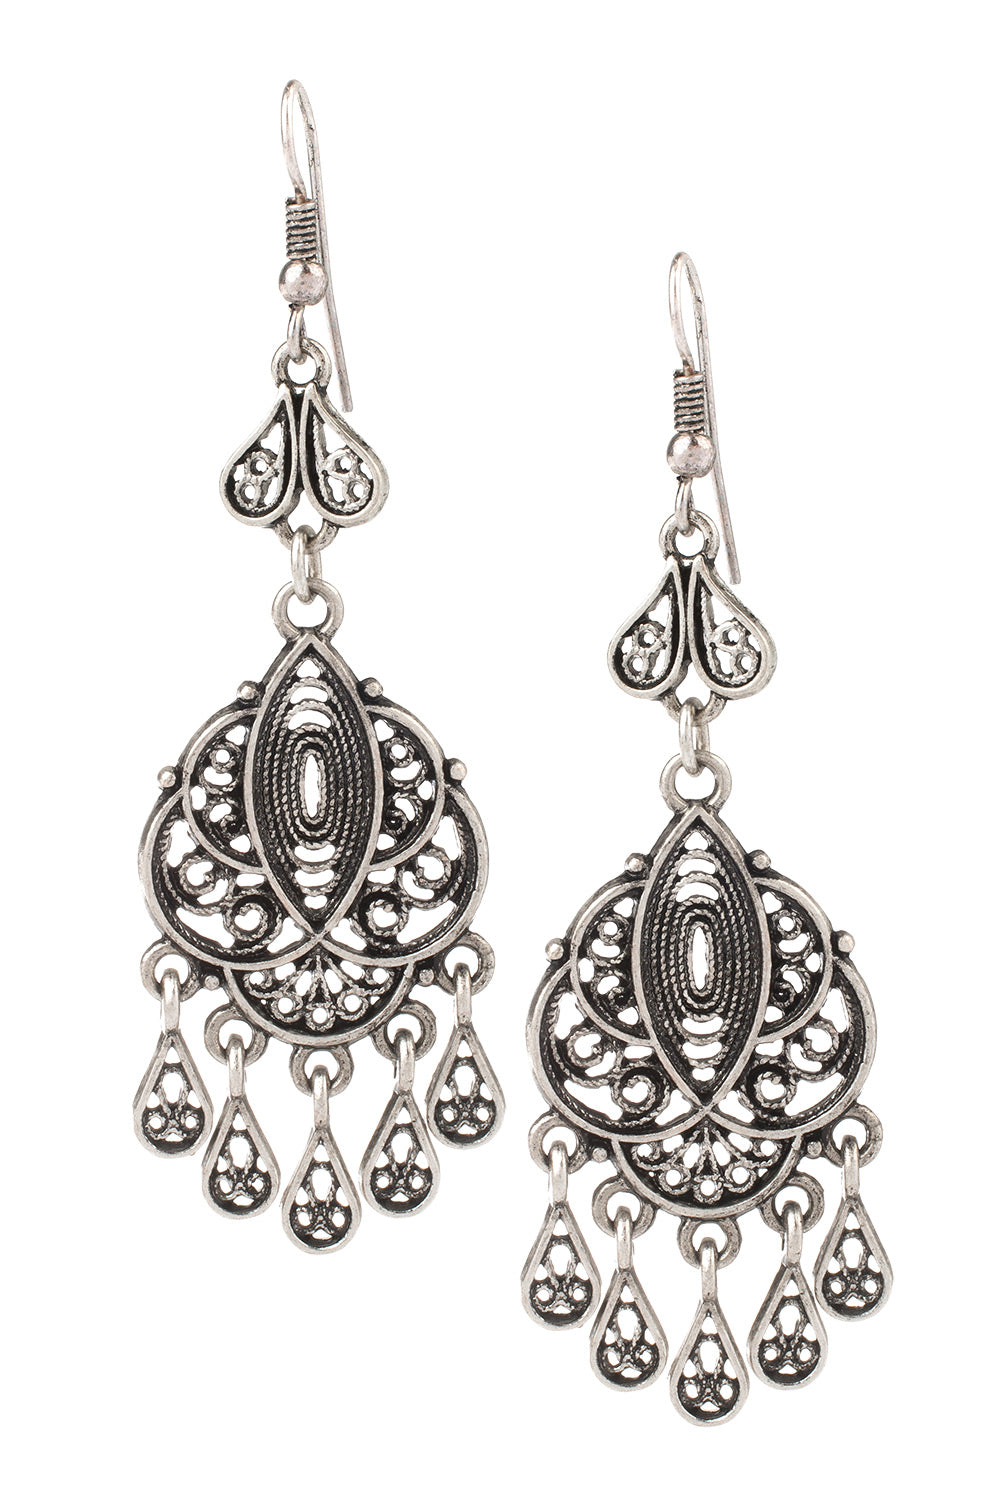 Type 2 Downton Abbey Earrings